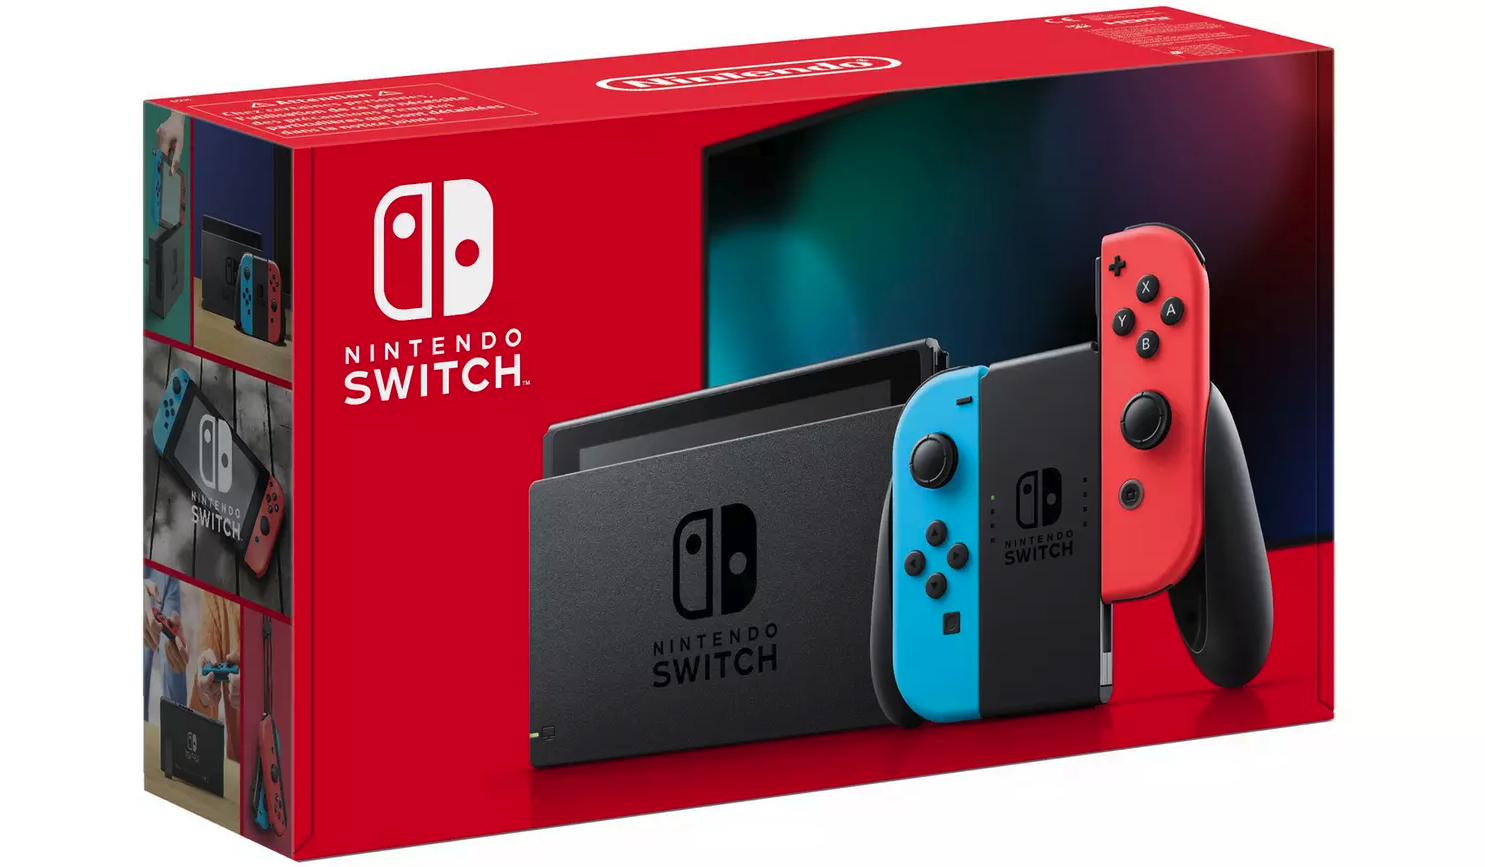 Nintendo Switch Console – Neon with improved battery